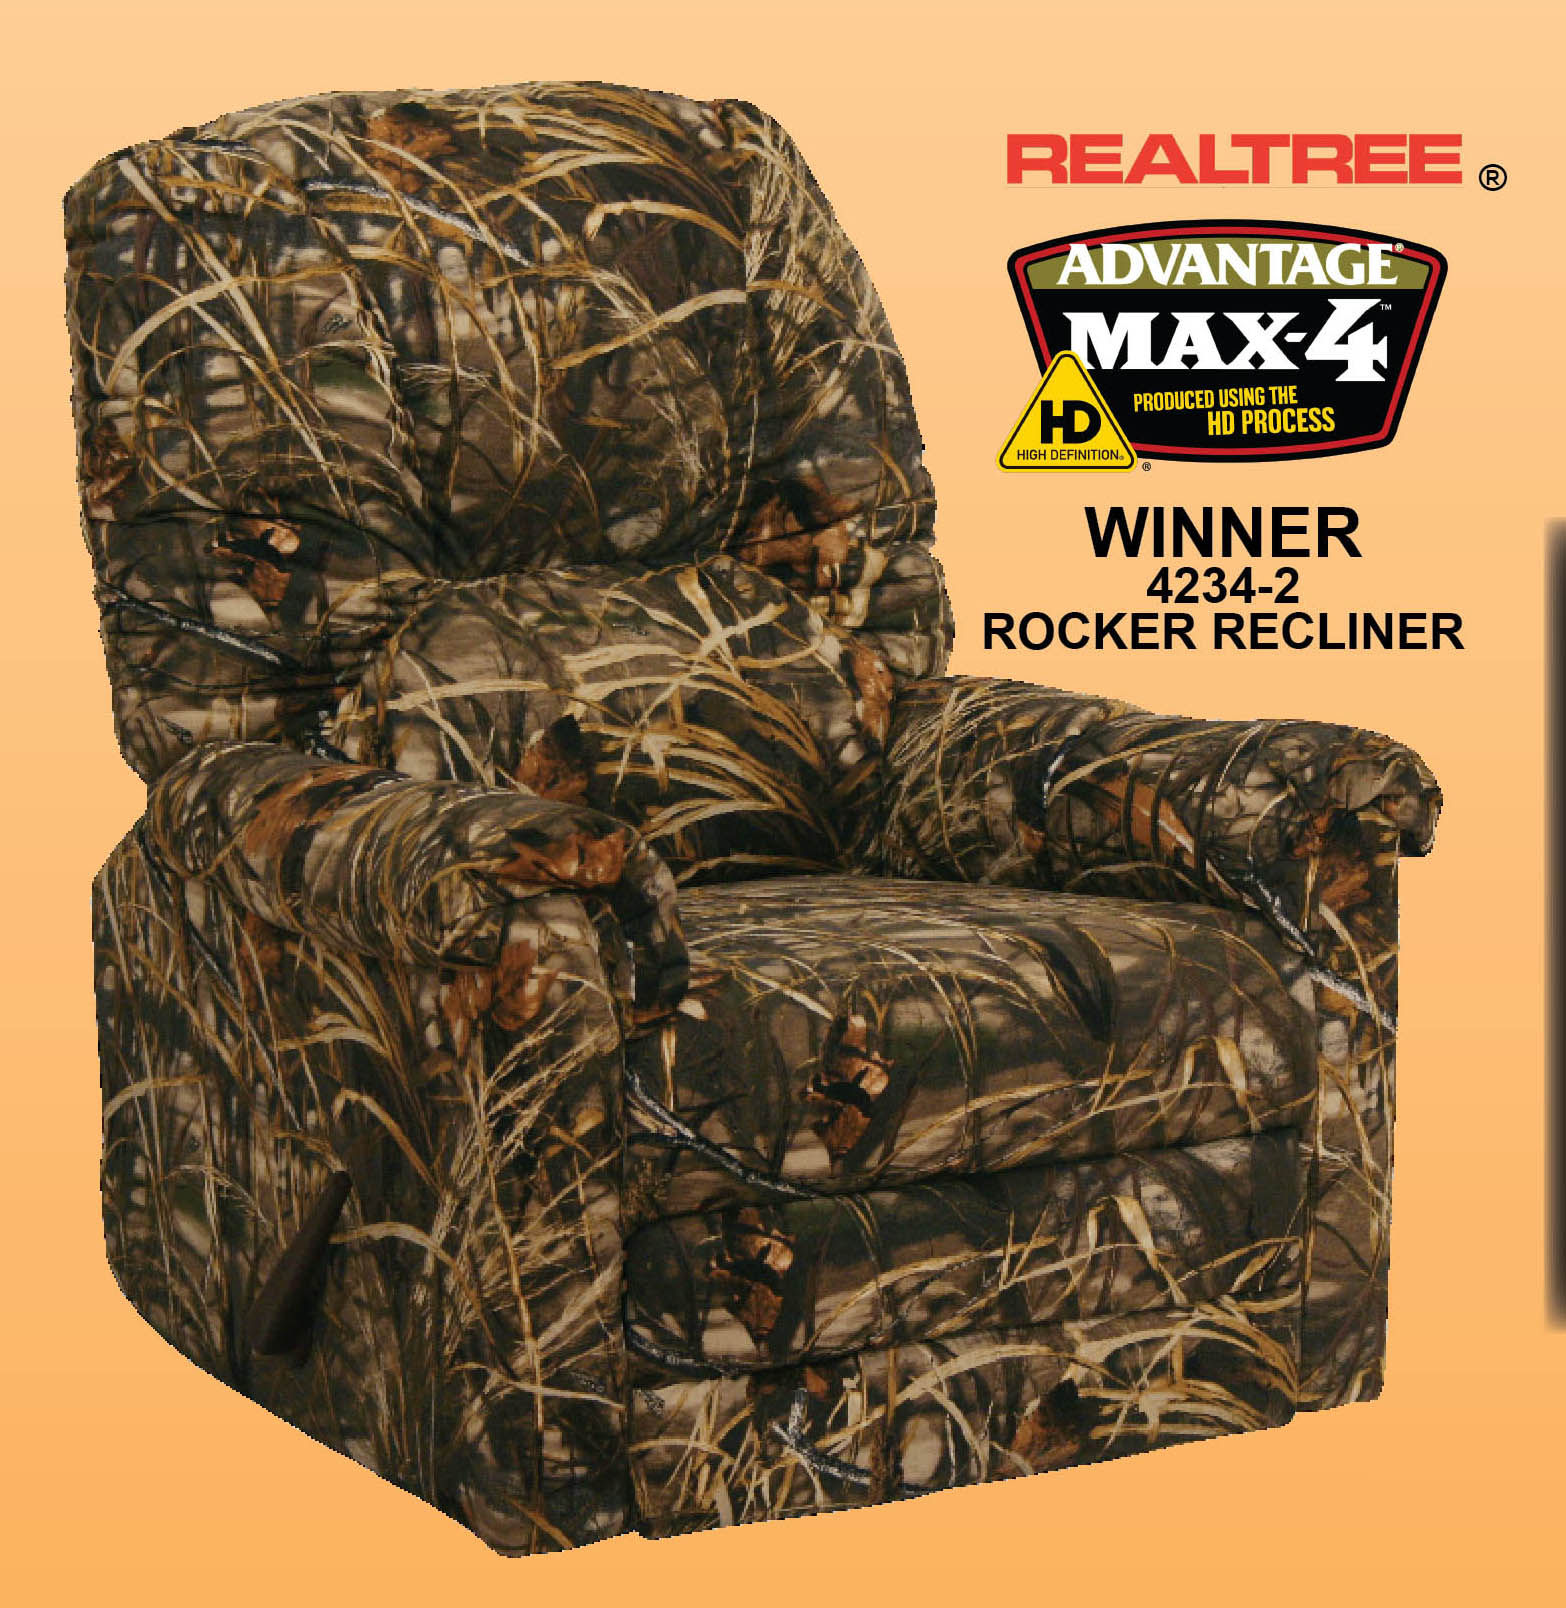 camo recliner chair wine barrel table and chairs max 4 images of